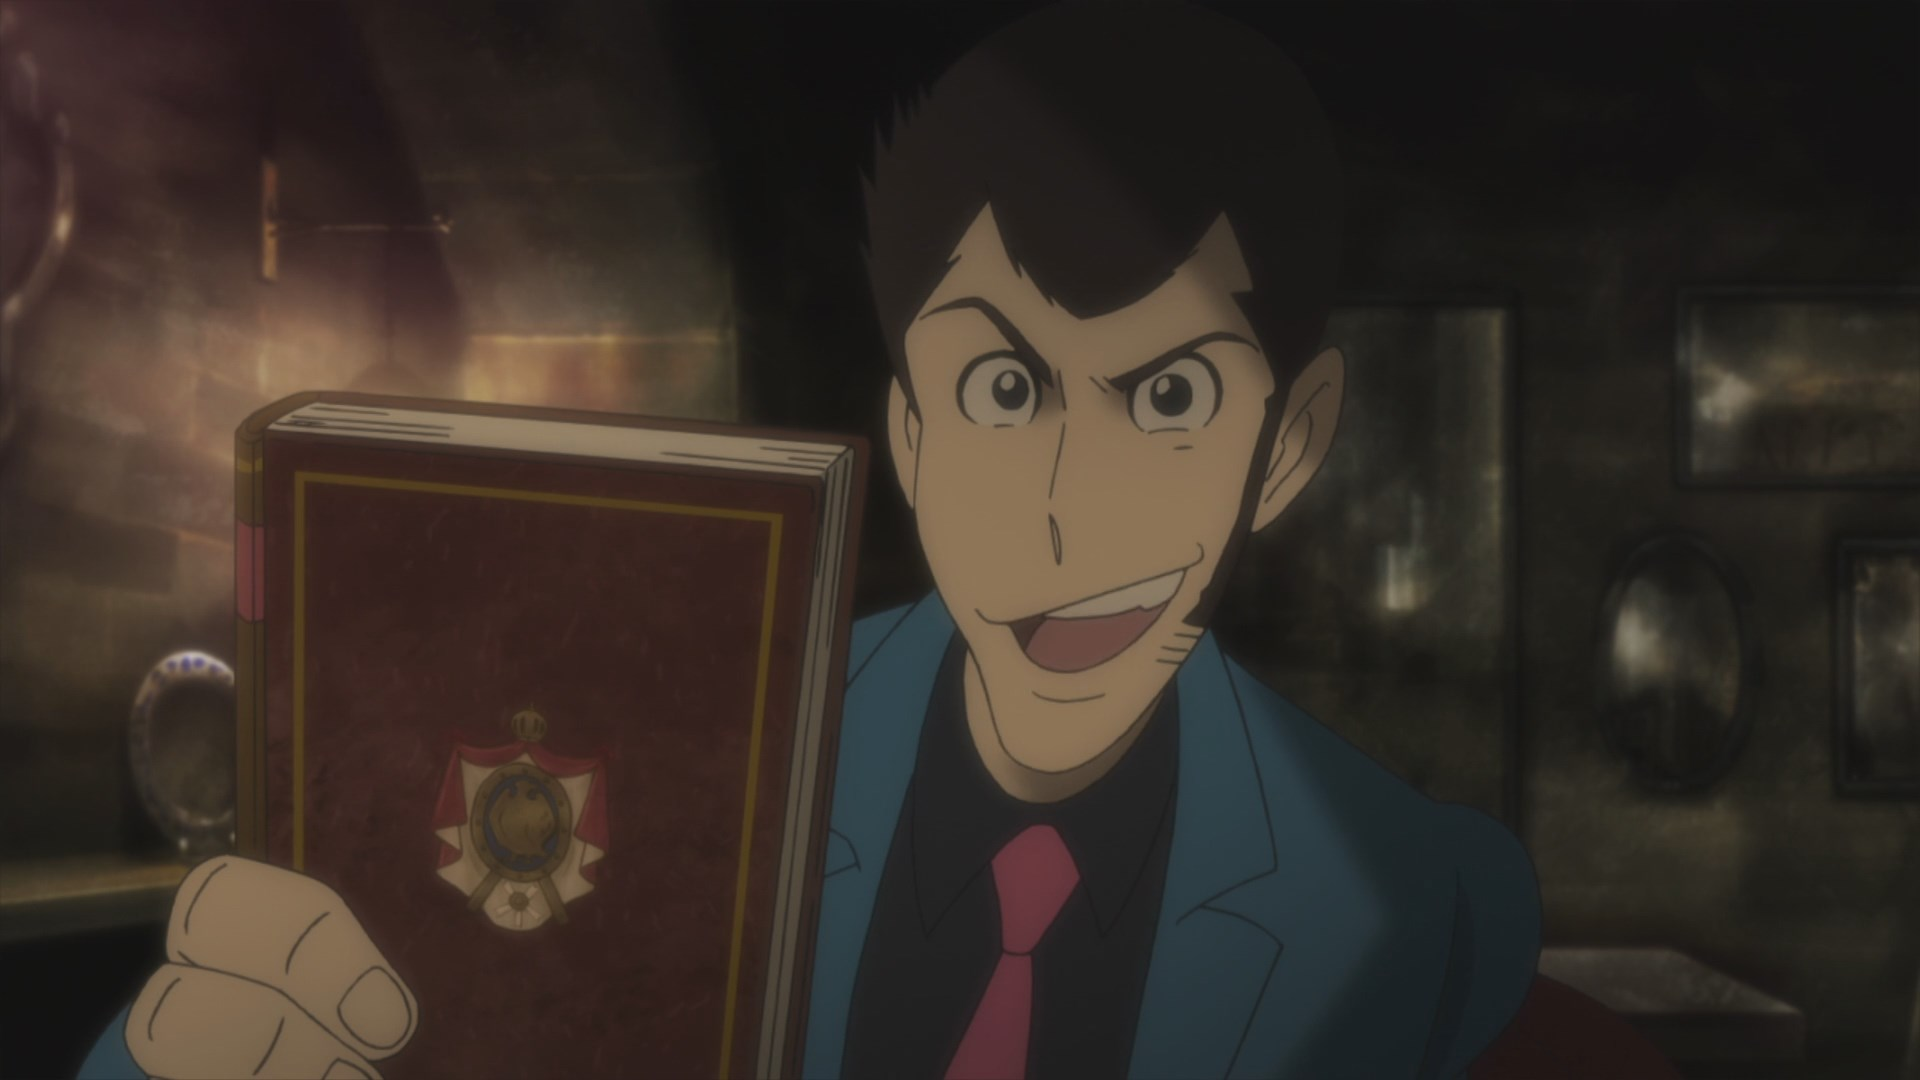 Lupin the Third Part 5 - 07